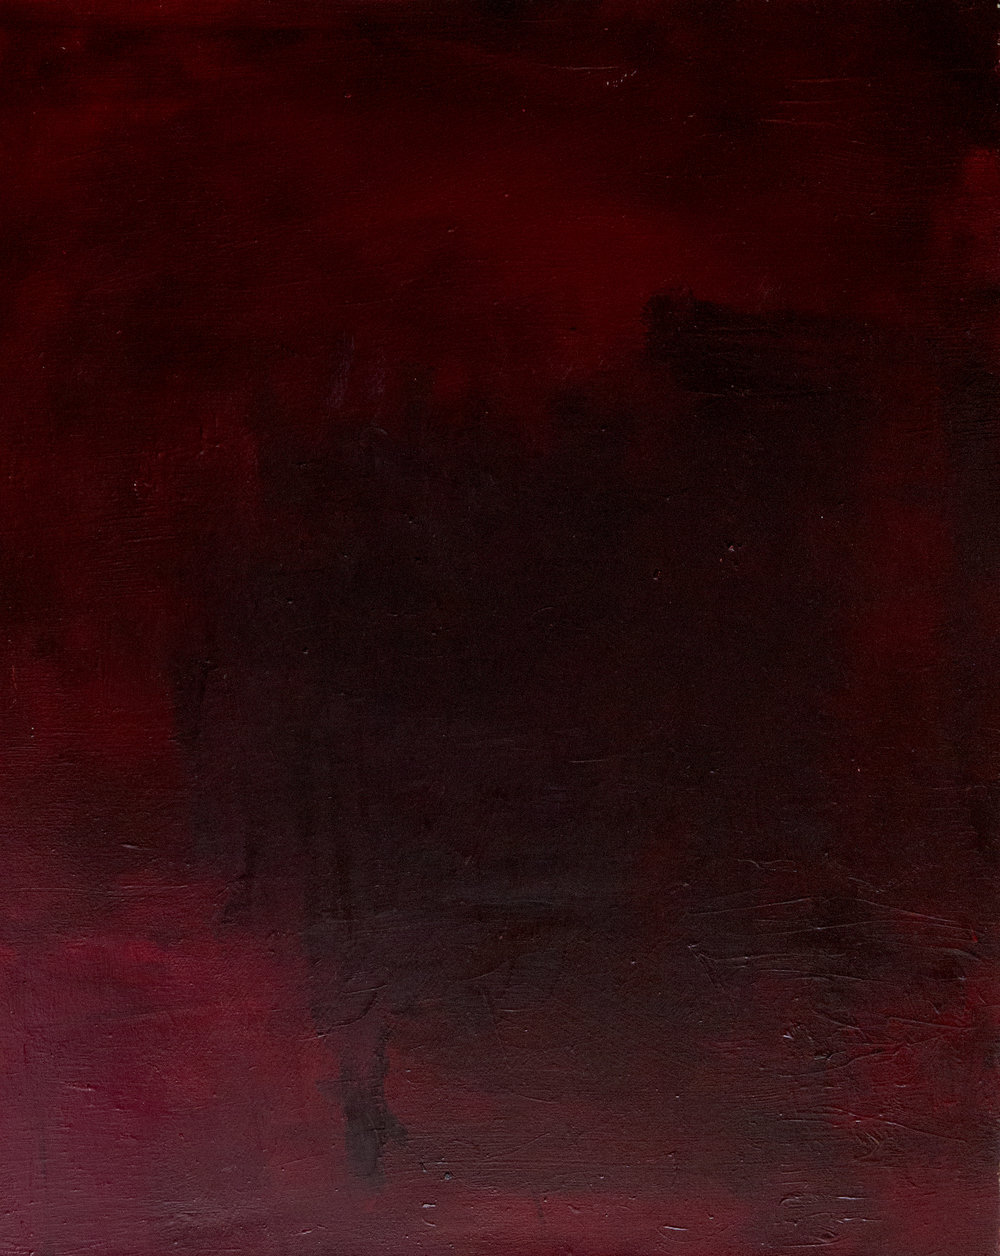 RED.2016.002_30x24 inches.jpg